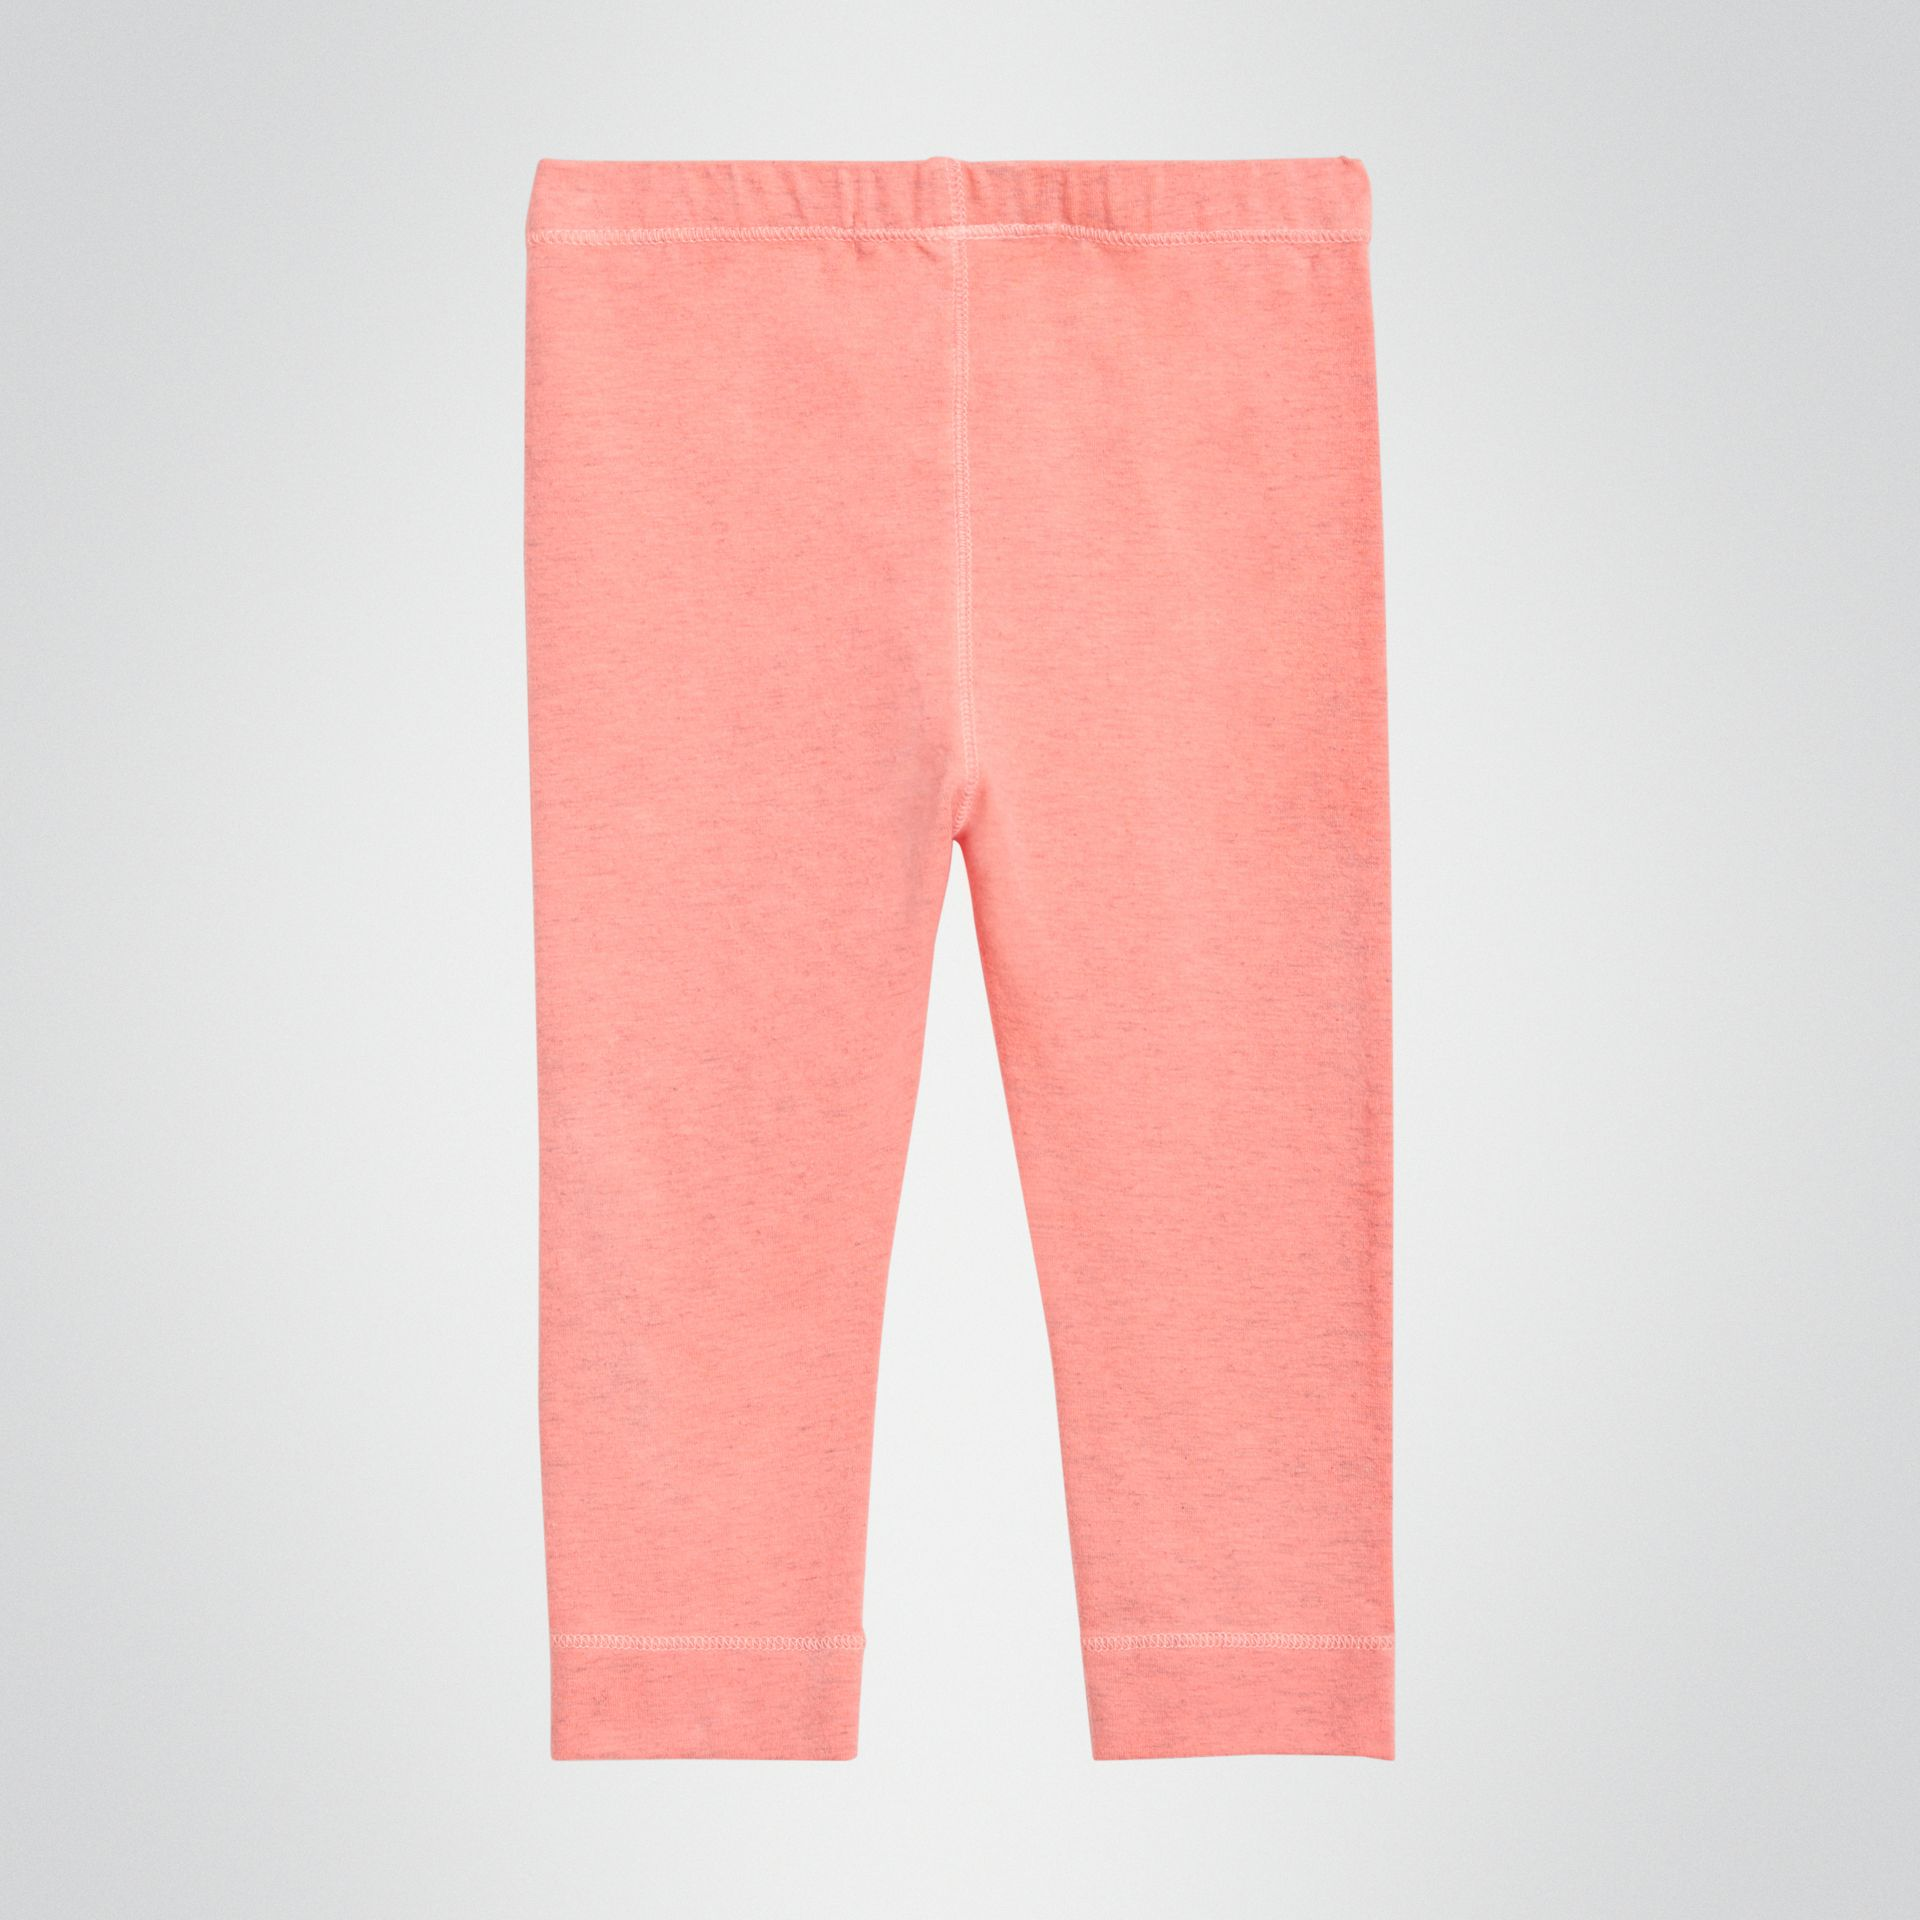 Logo Print Stretch Cotton Leggings in Pale Pink - Children | Burberry - gallery image 3